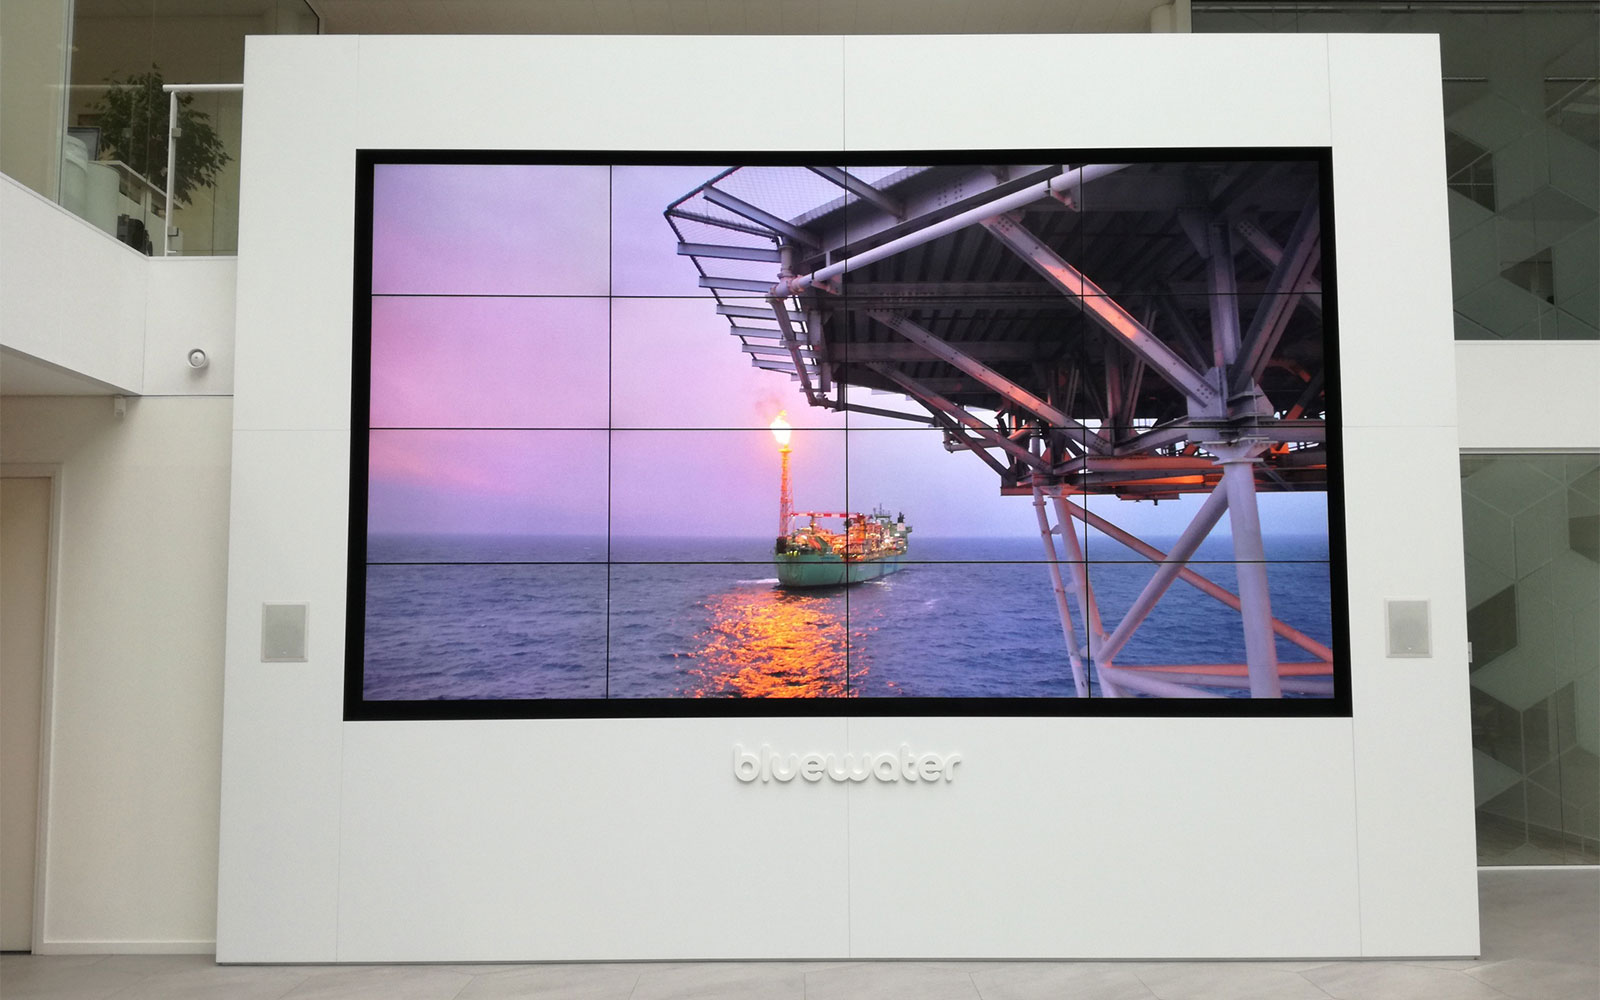 videowall - cleverdisplay - bluewater - narrowcasting